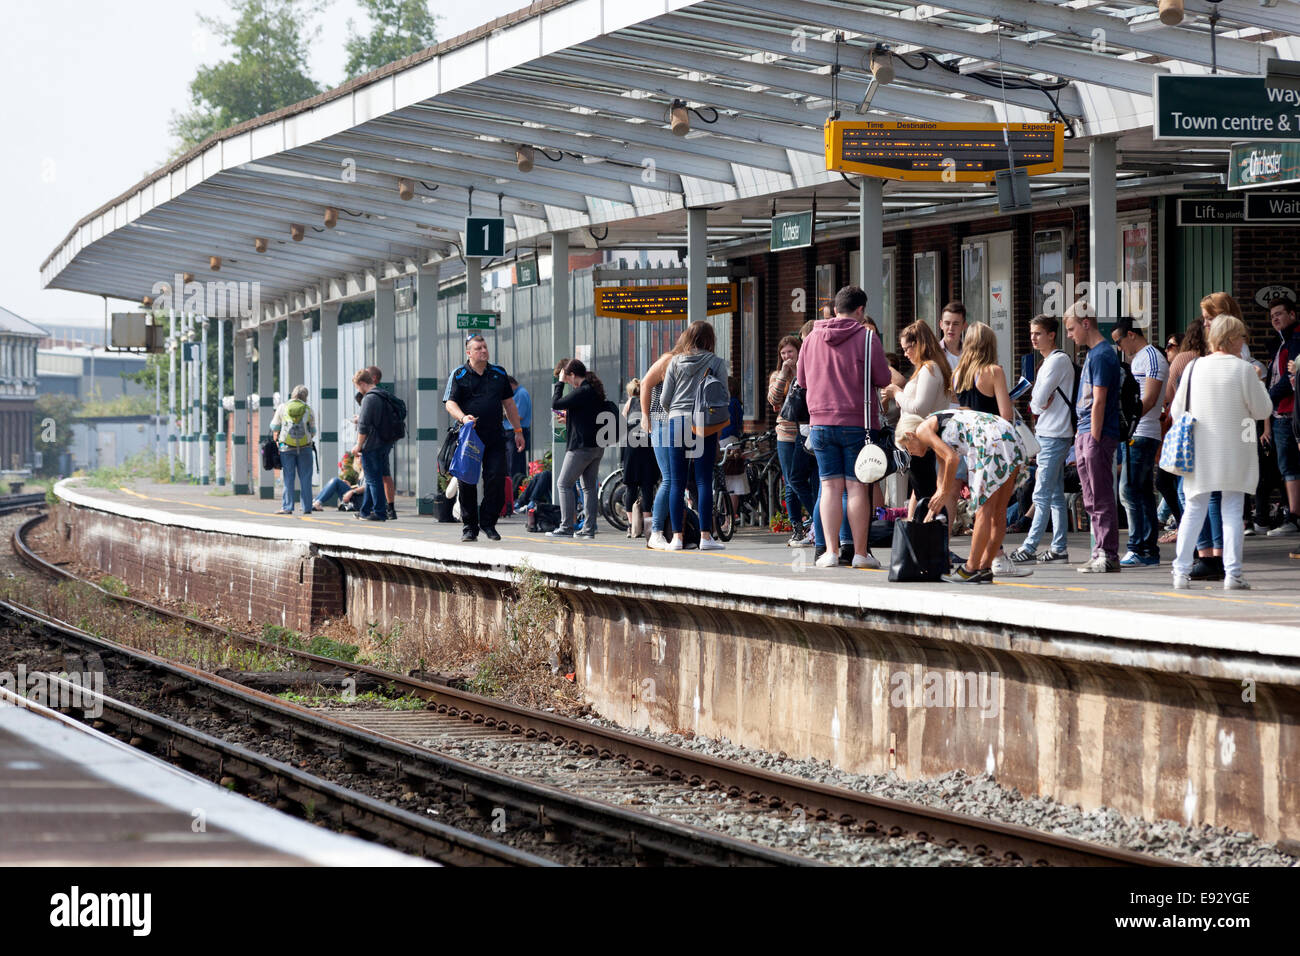 Passengers waiting on the platform of Chichester station, West Sussex - Stock Image